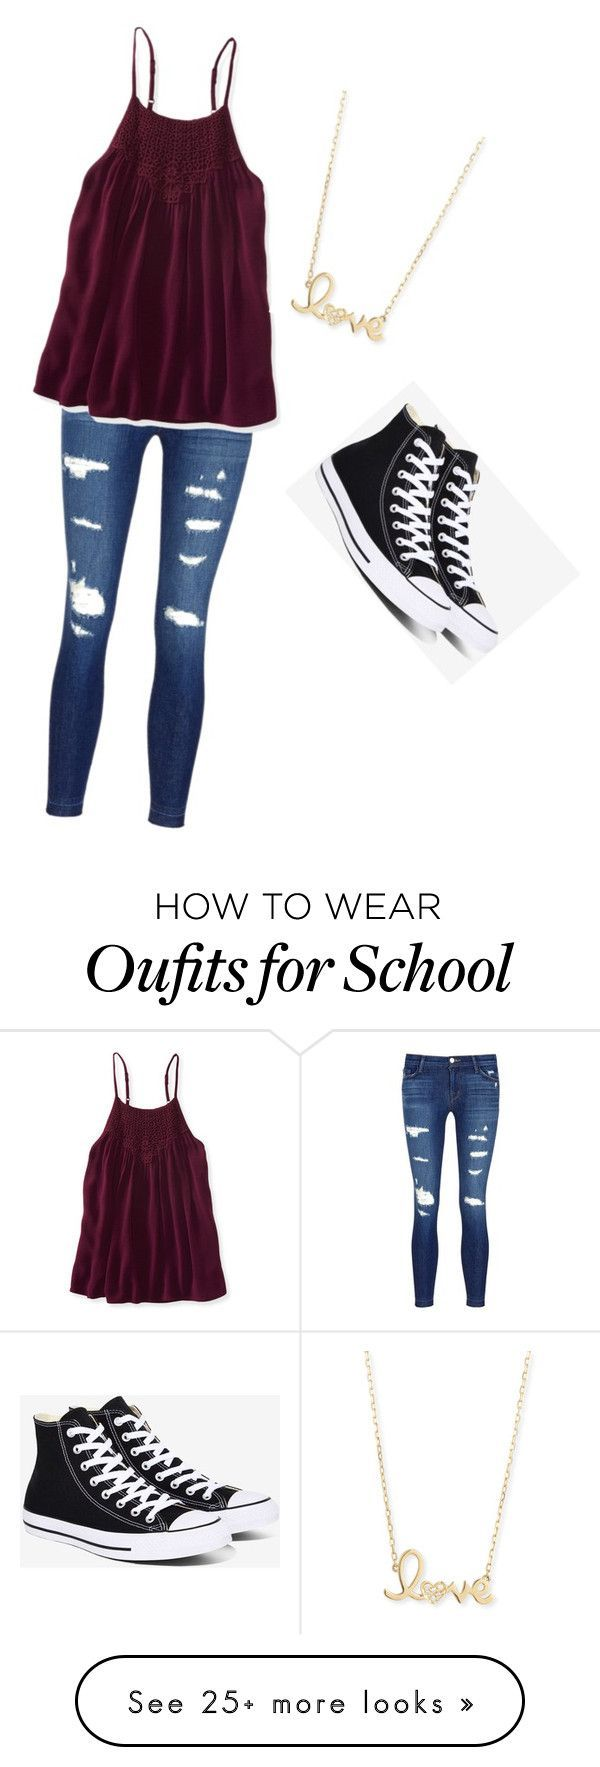 Resultado de imagen para how to wear school gifts